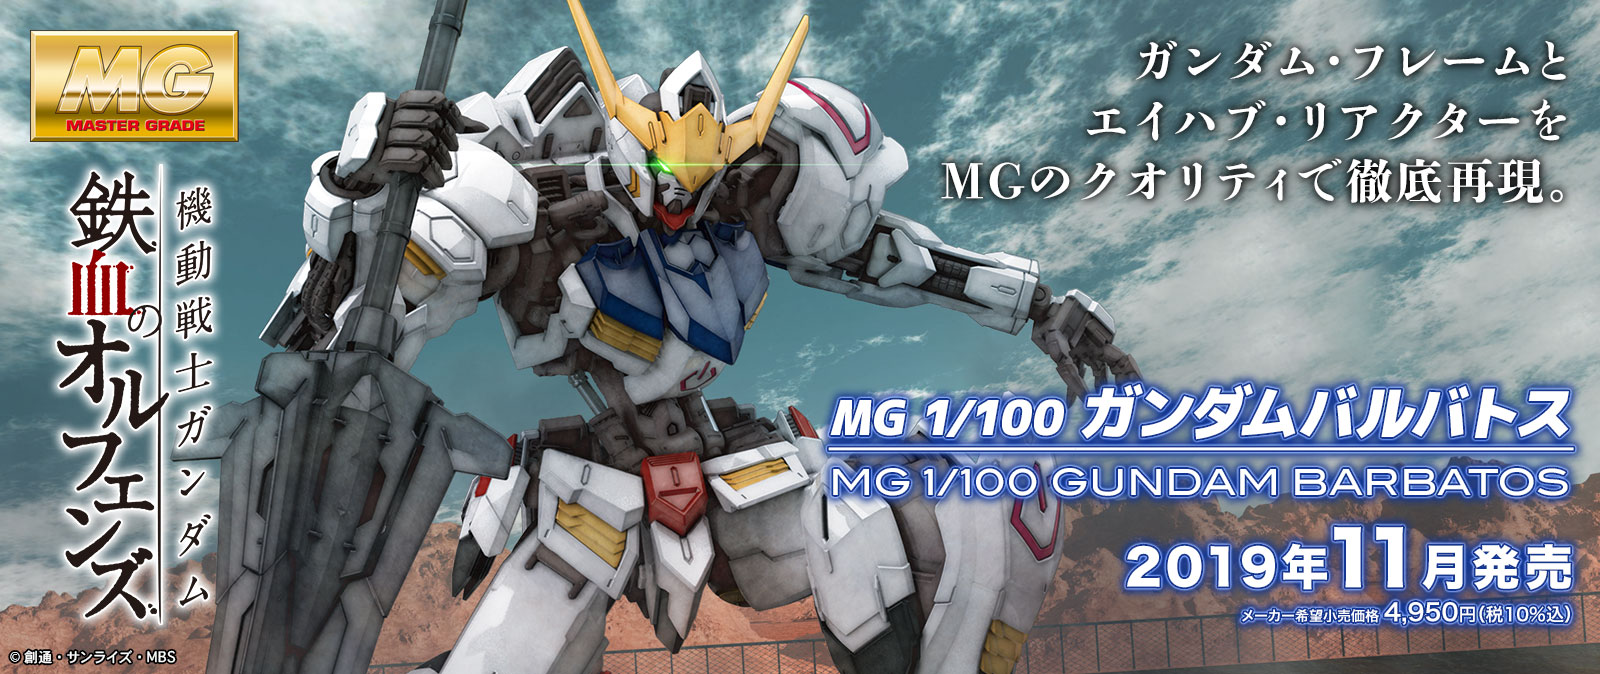 Image result for MG Gundam Barbatos